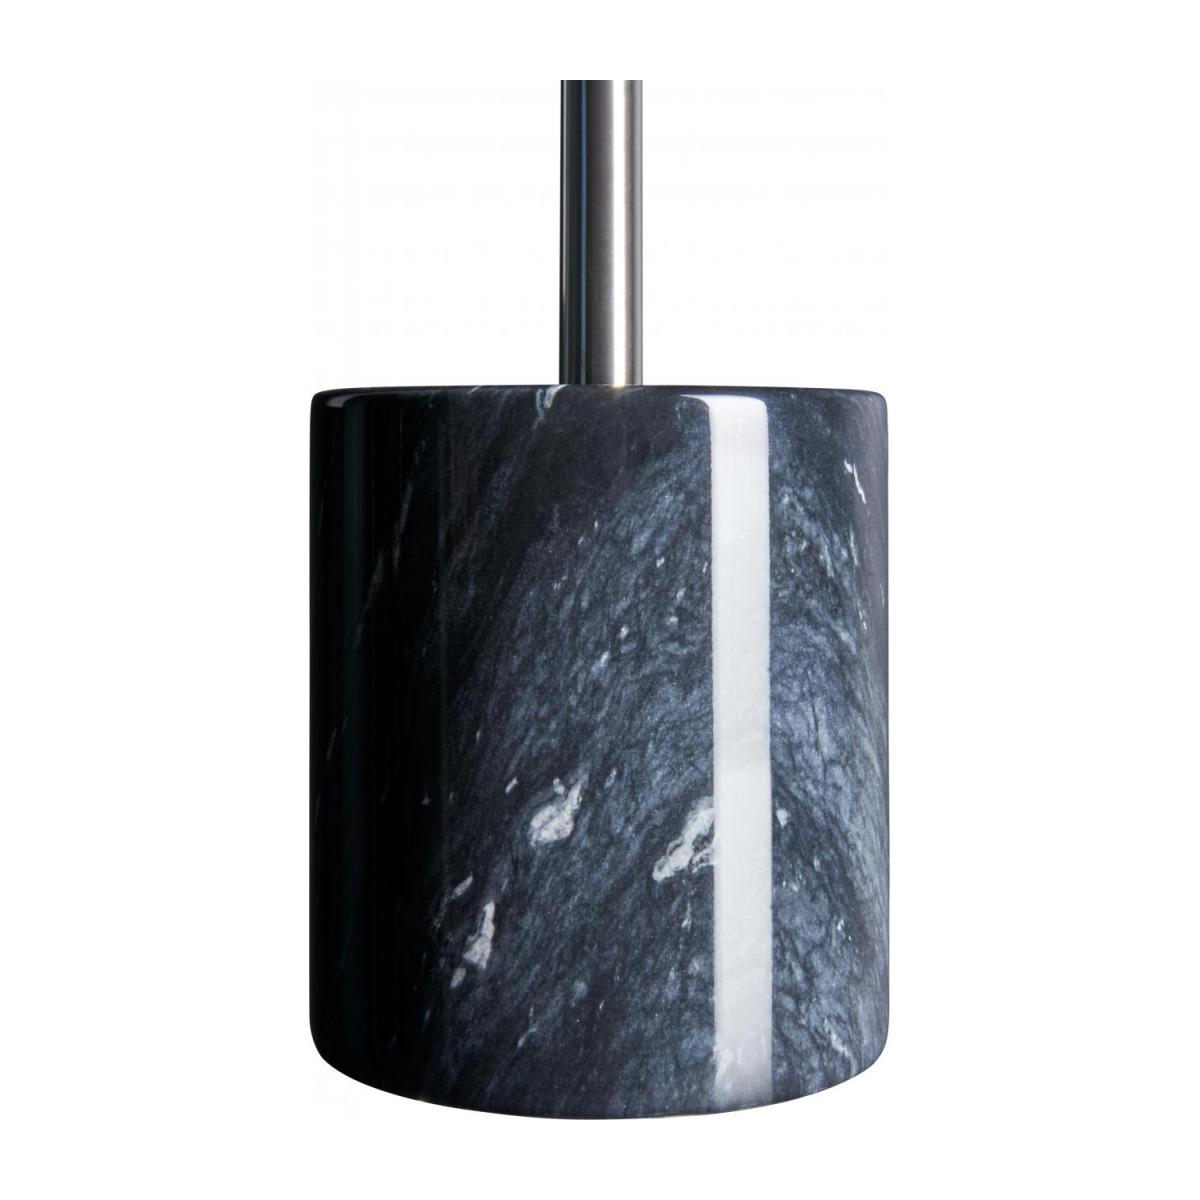 Toilet brush made of marble, black n°3